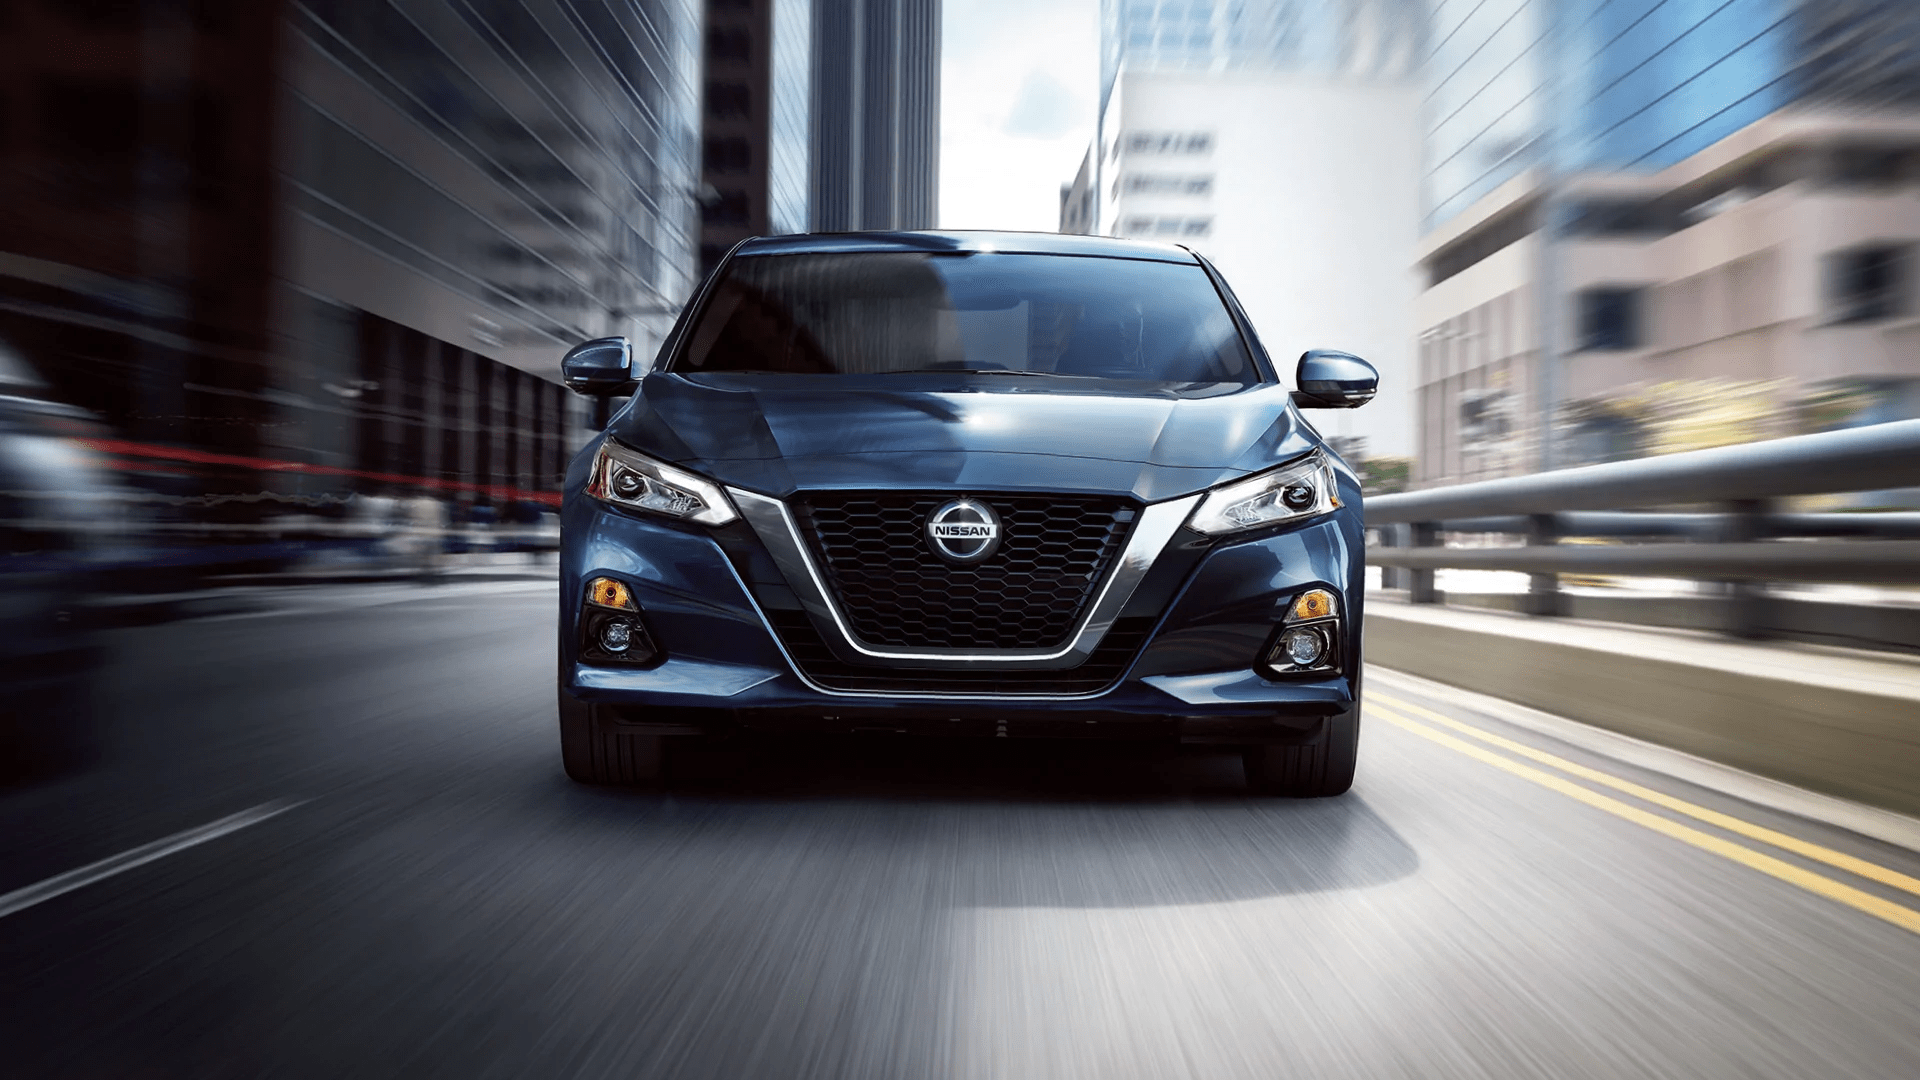 2020 Nissan Altima front grille profile